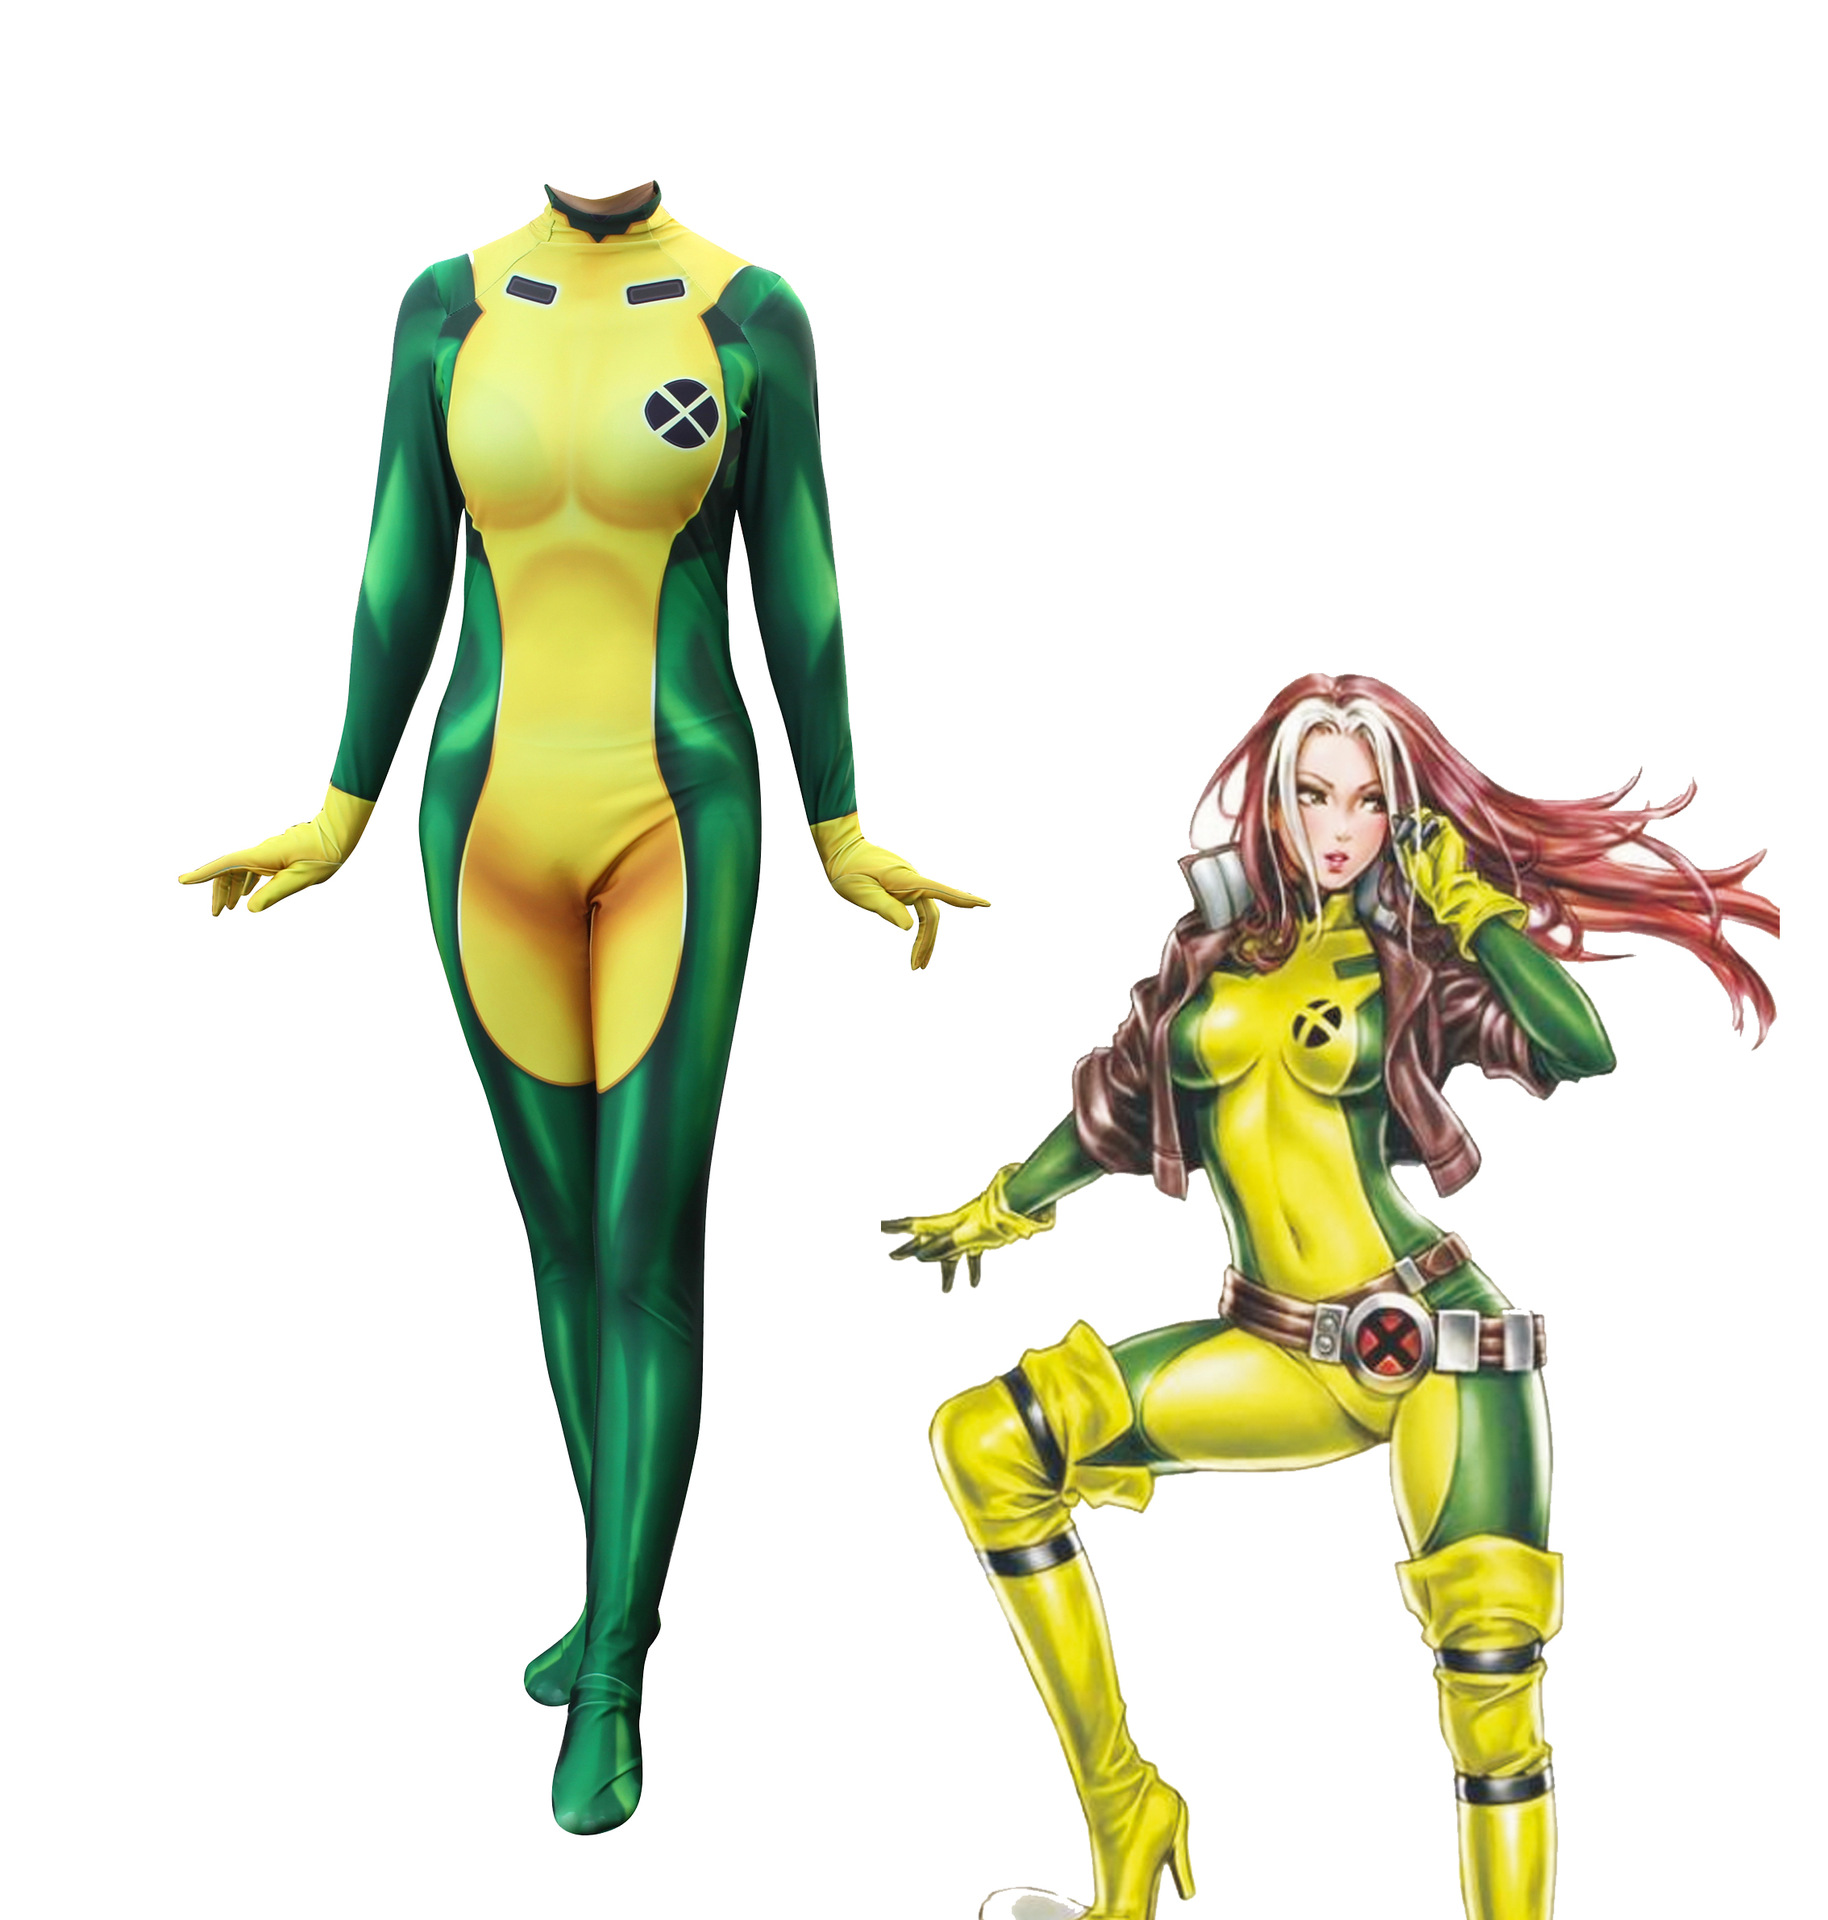 3D Printing X-Men Rogue Cosplay Costume <font><b>Lycra</b></font> Spandex <font><b>Sexy</b></font> <font><b>Catsuit</b></font> Zentai Woman/Girls/Lady Superhero Halloween Xmen Costumes image